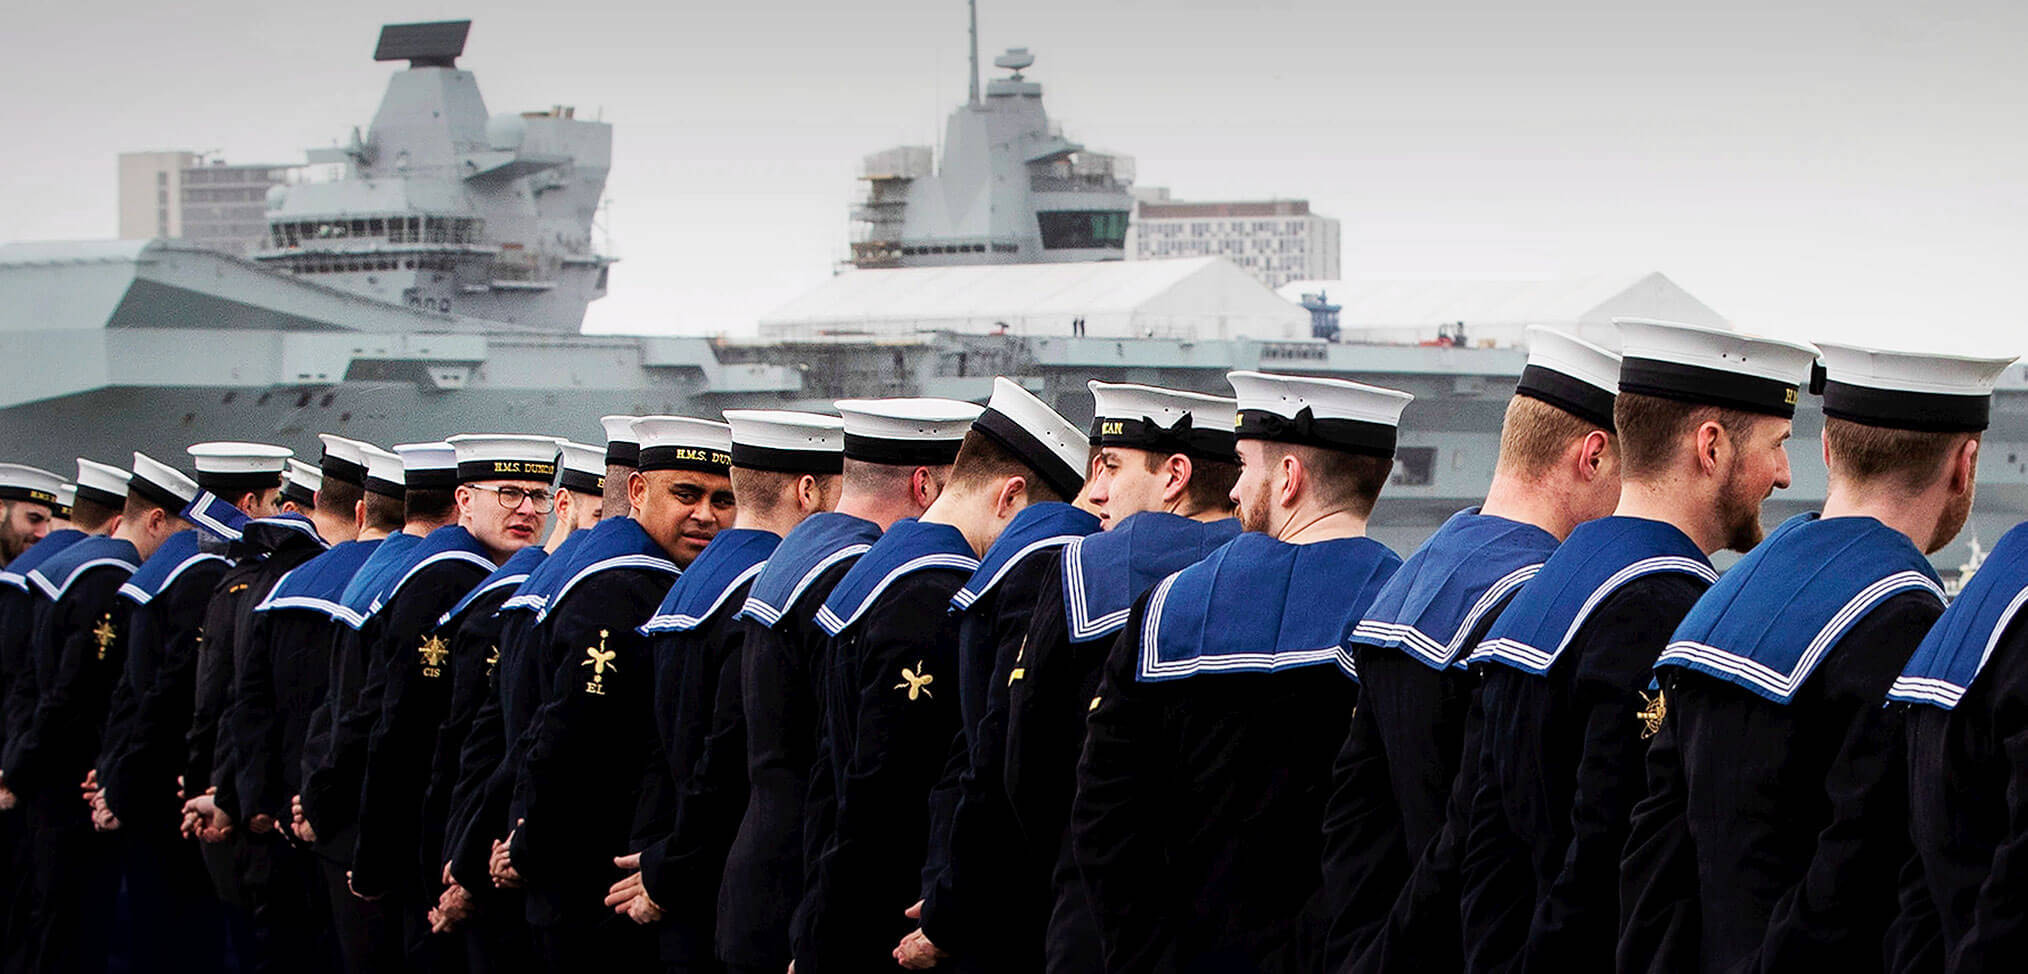 Has the Royal Navy solved its manpower problems?